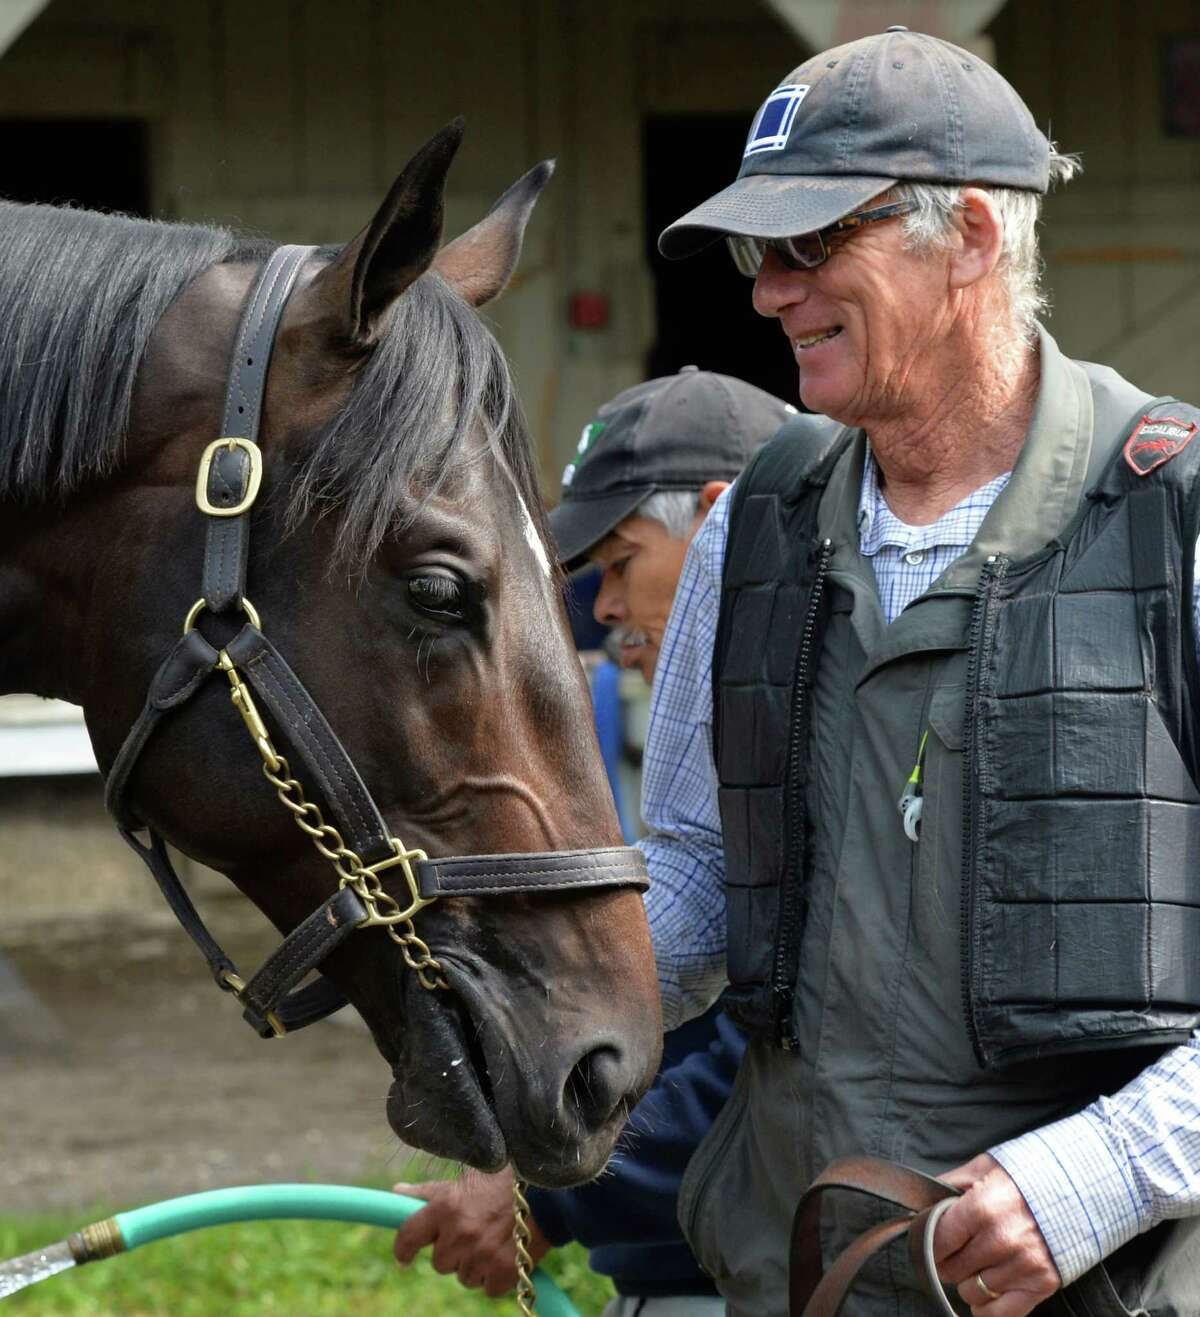 The son of Horse of the Year Zenyatta, Cozmic One is entertained by trainer John Shirreffs Wednesday Aug. 6, 2014 at the Saratoga Race Course in Saratoga Springs, New York. (Skip Dickstein/Times Union)